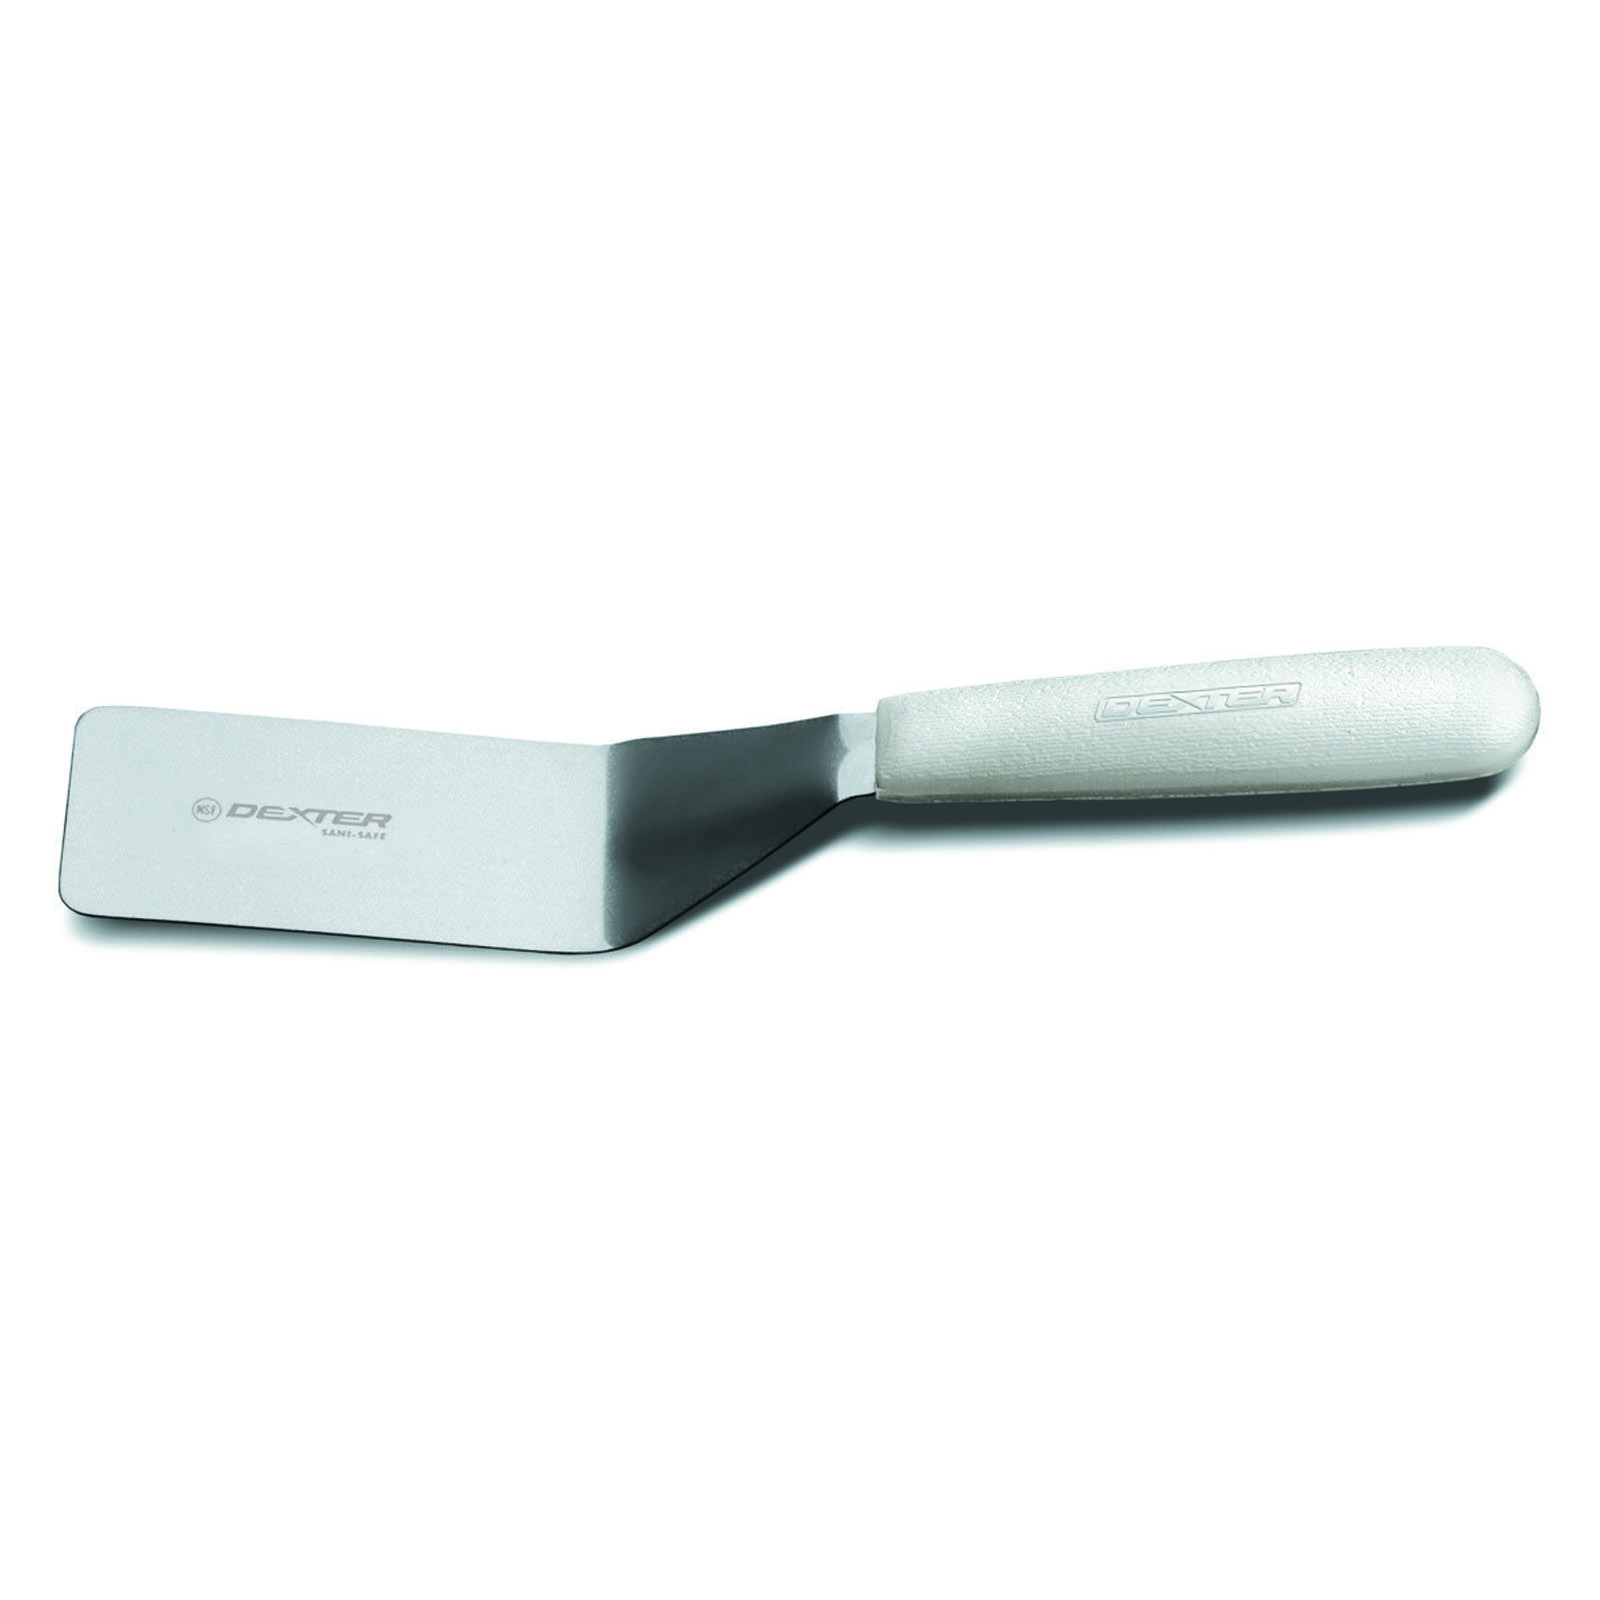 Dexter Russell S172 turner, solid, stainless steel